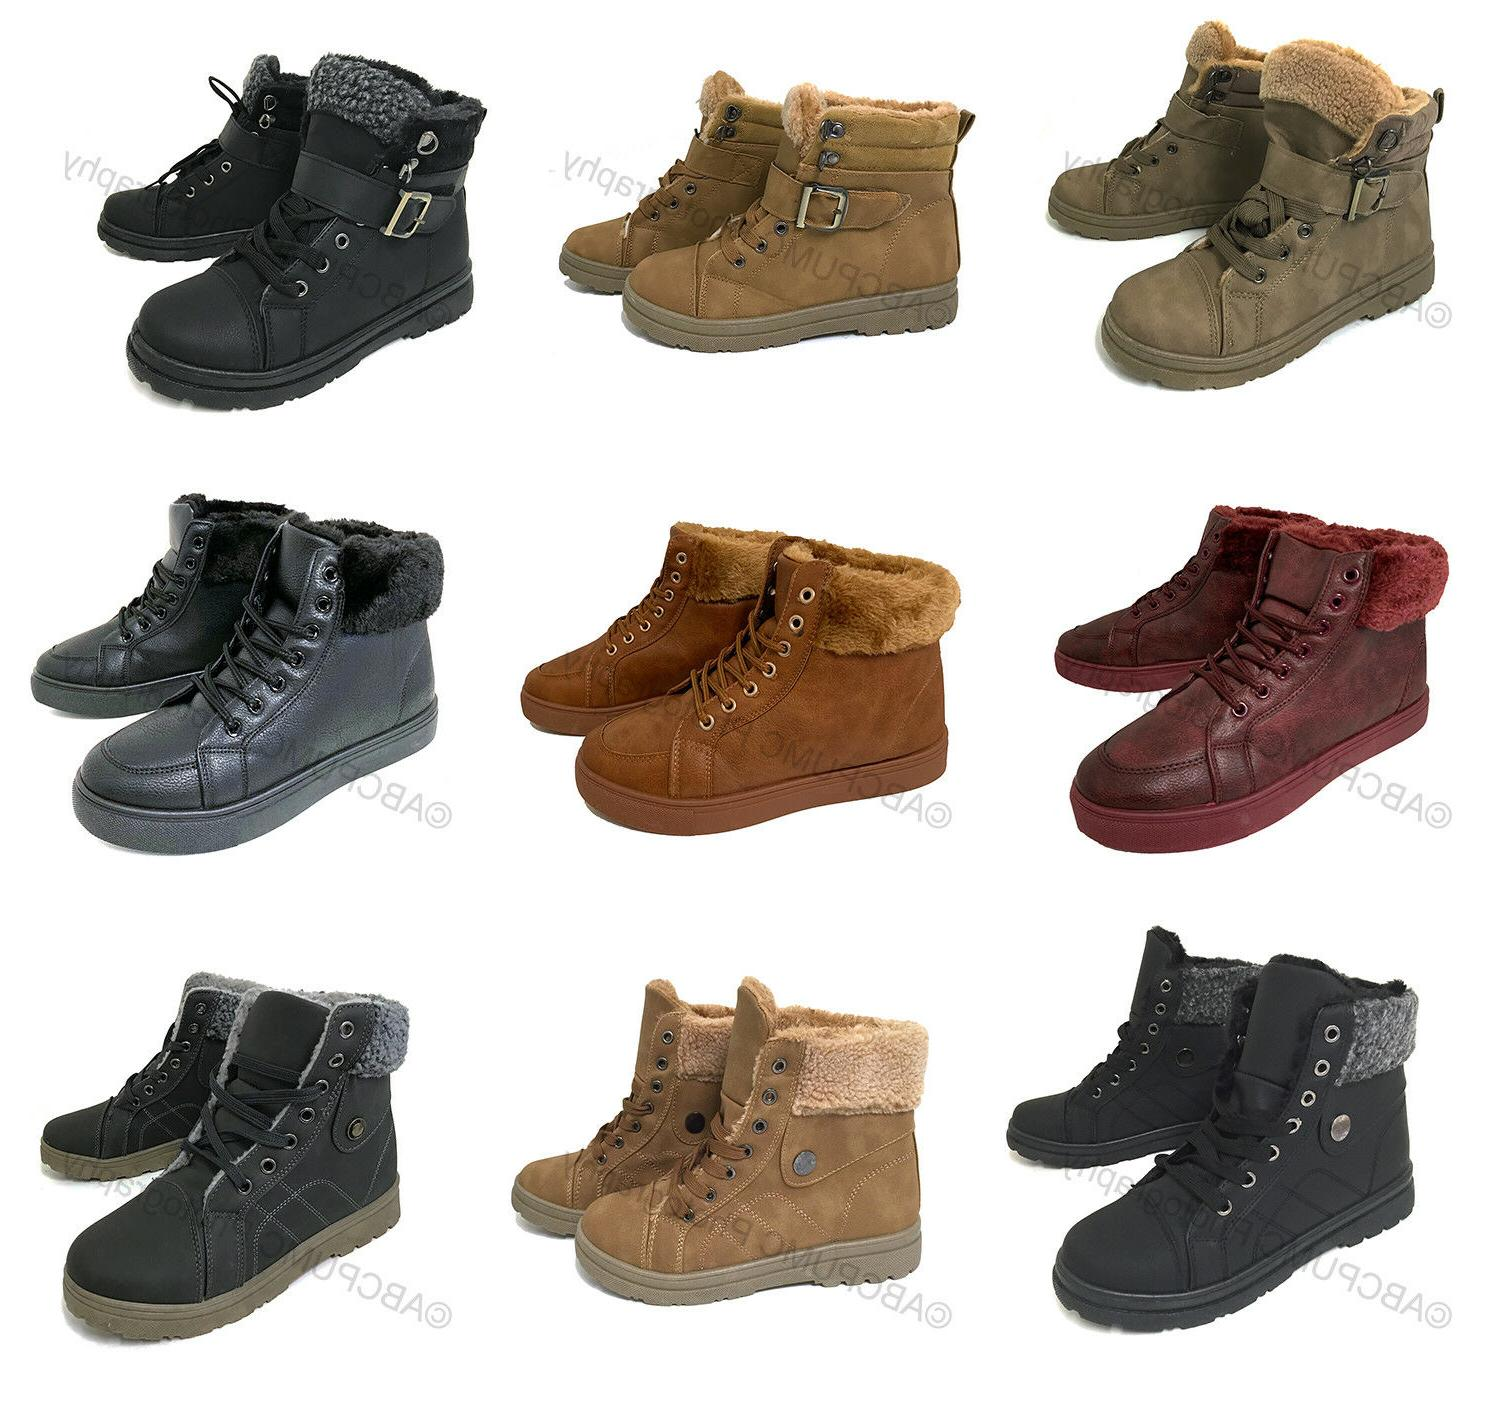 women s sneaker boots winter high top